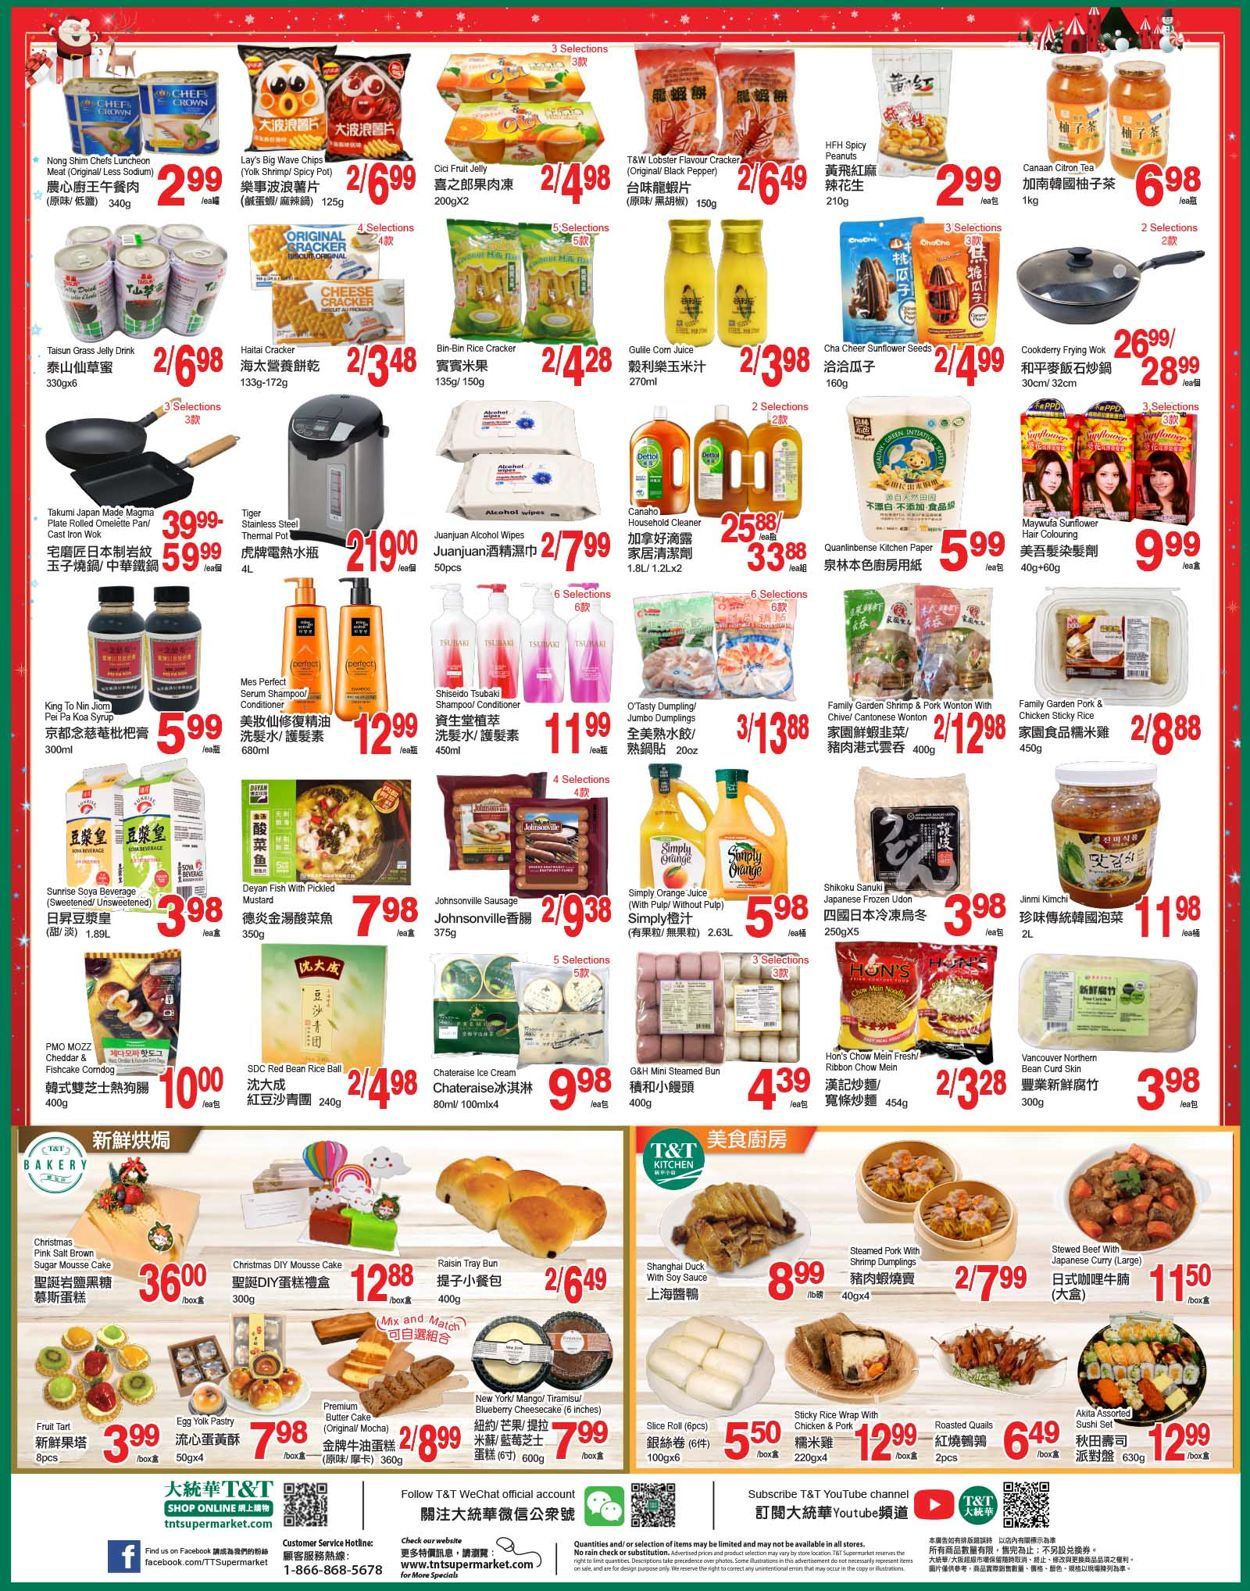 T&T Supermarket Christmas 2020 - Alberta Flyer - 12/18-12/24/2020 (Page 2)